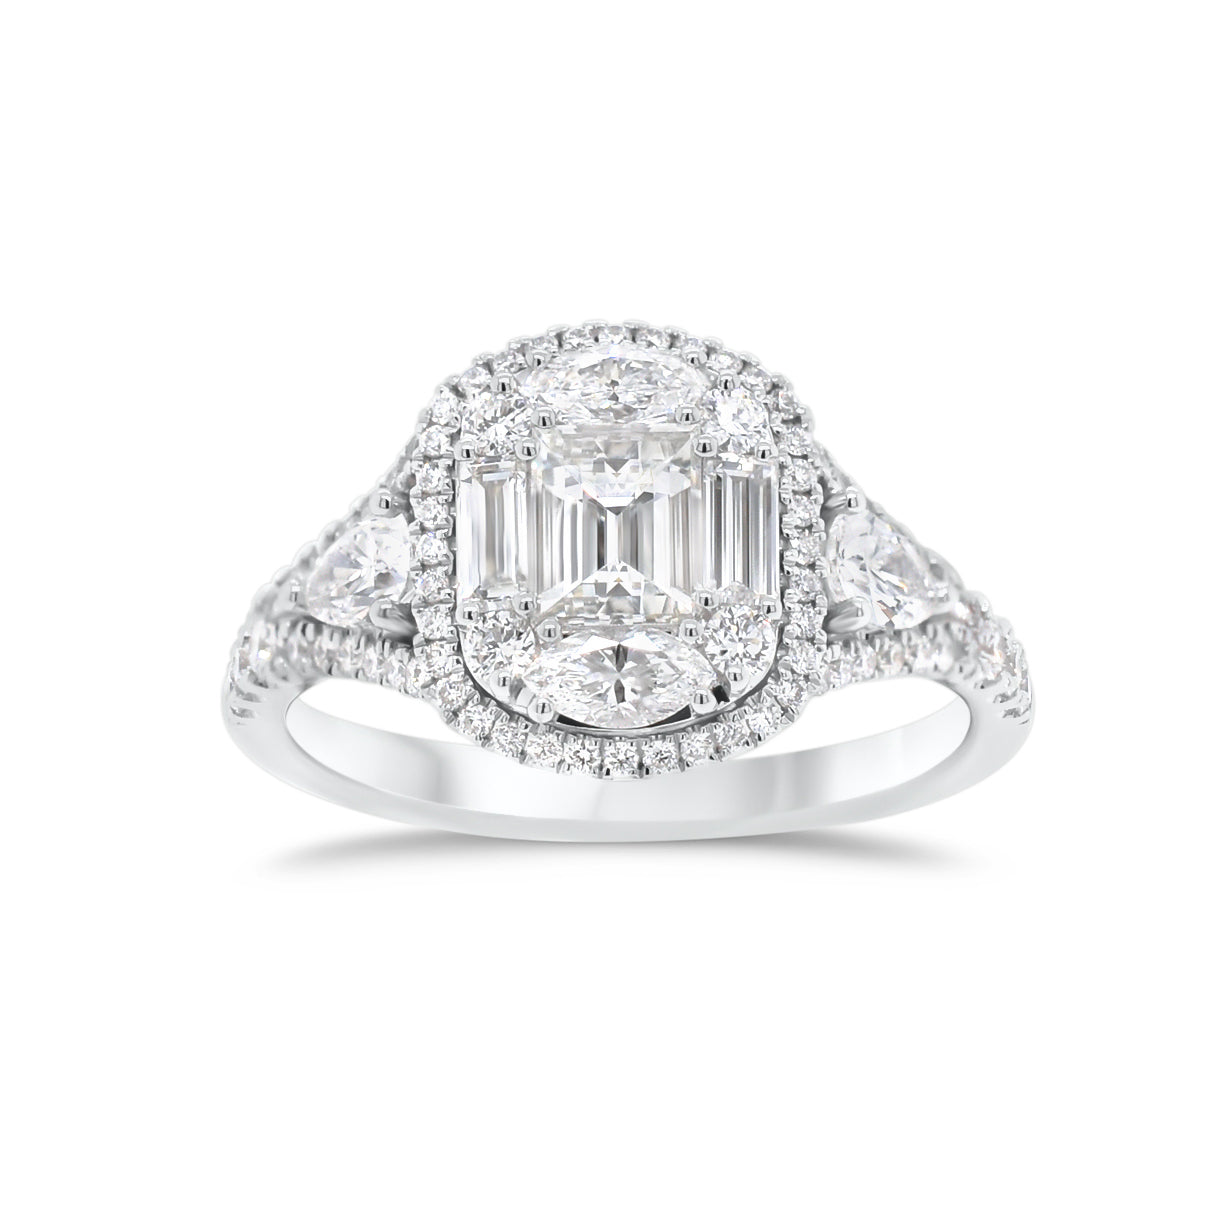 Diamond Mixed Cuts Engagement Ring